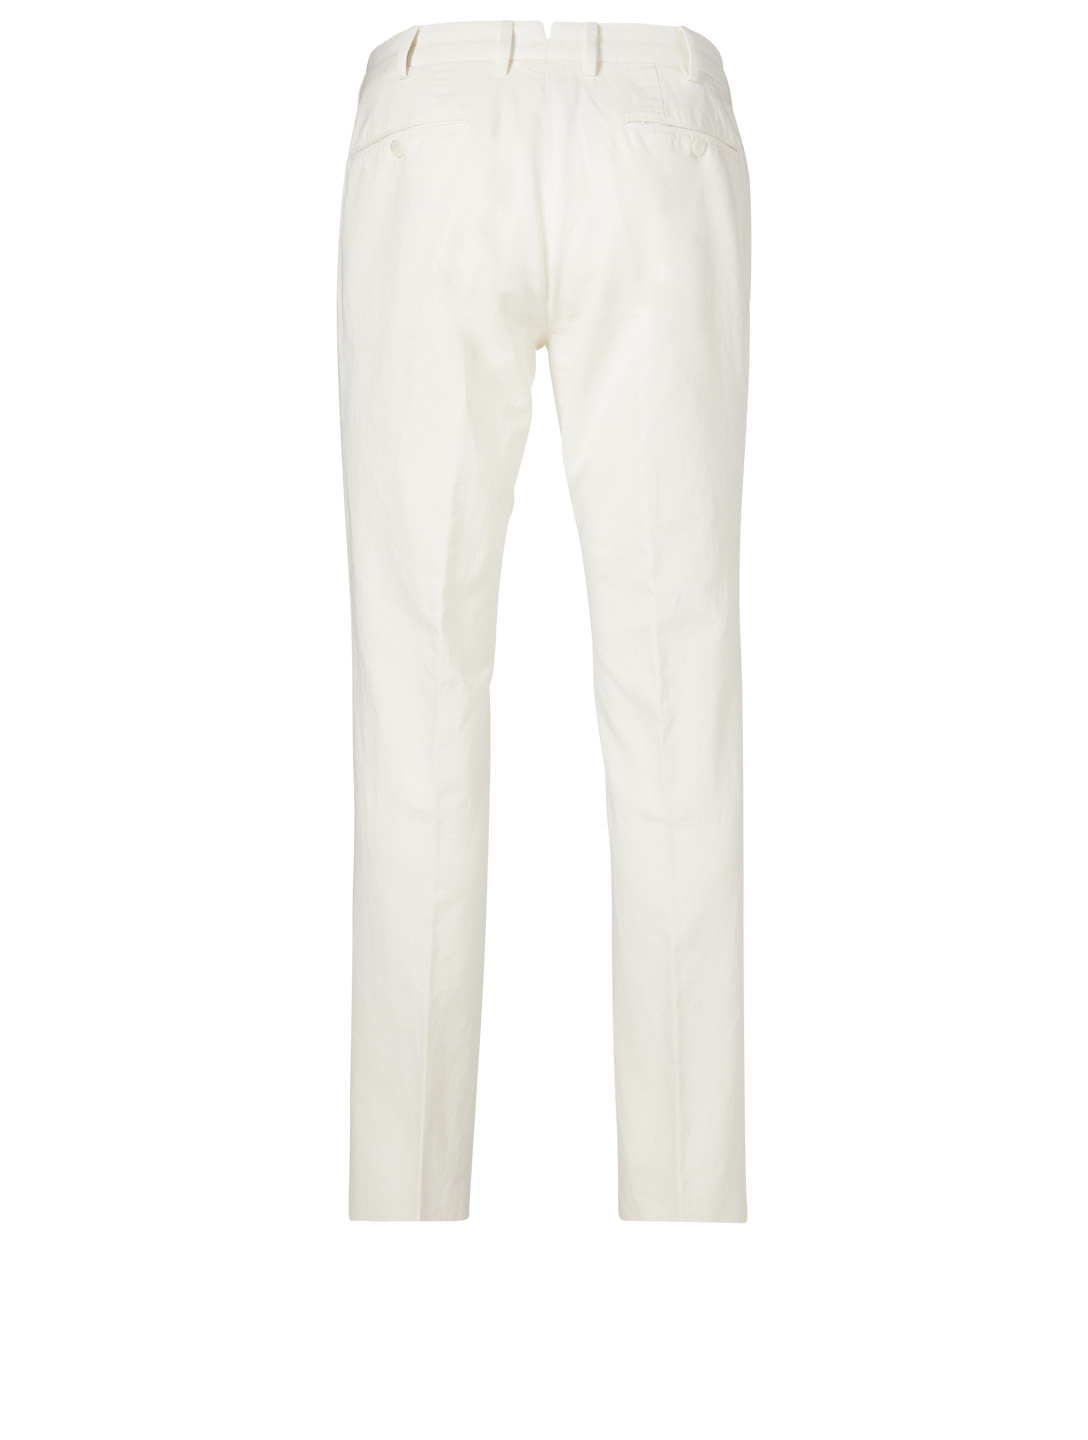 ERMENEGILDO ZEGNA Cotton And Linen Pants Men's White